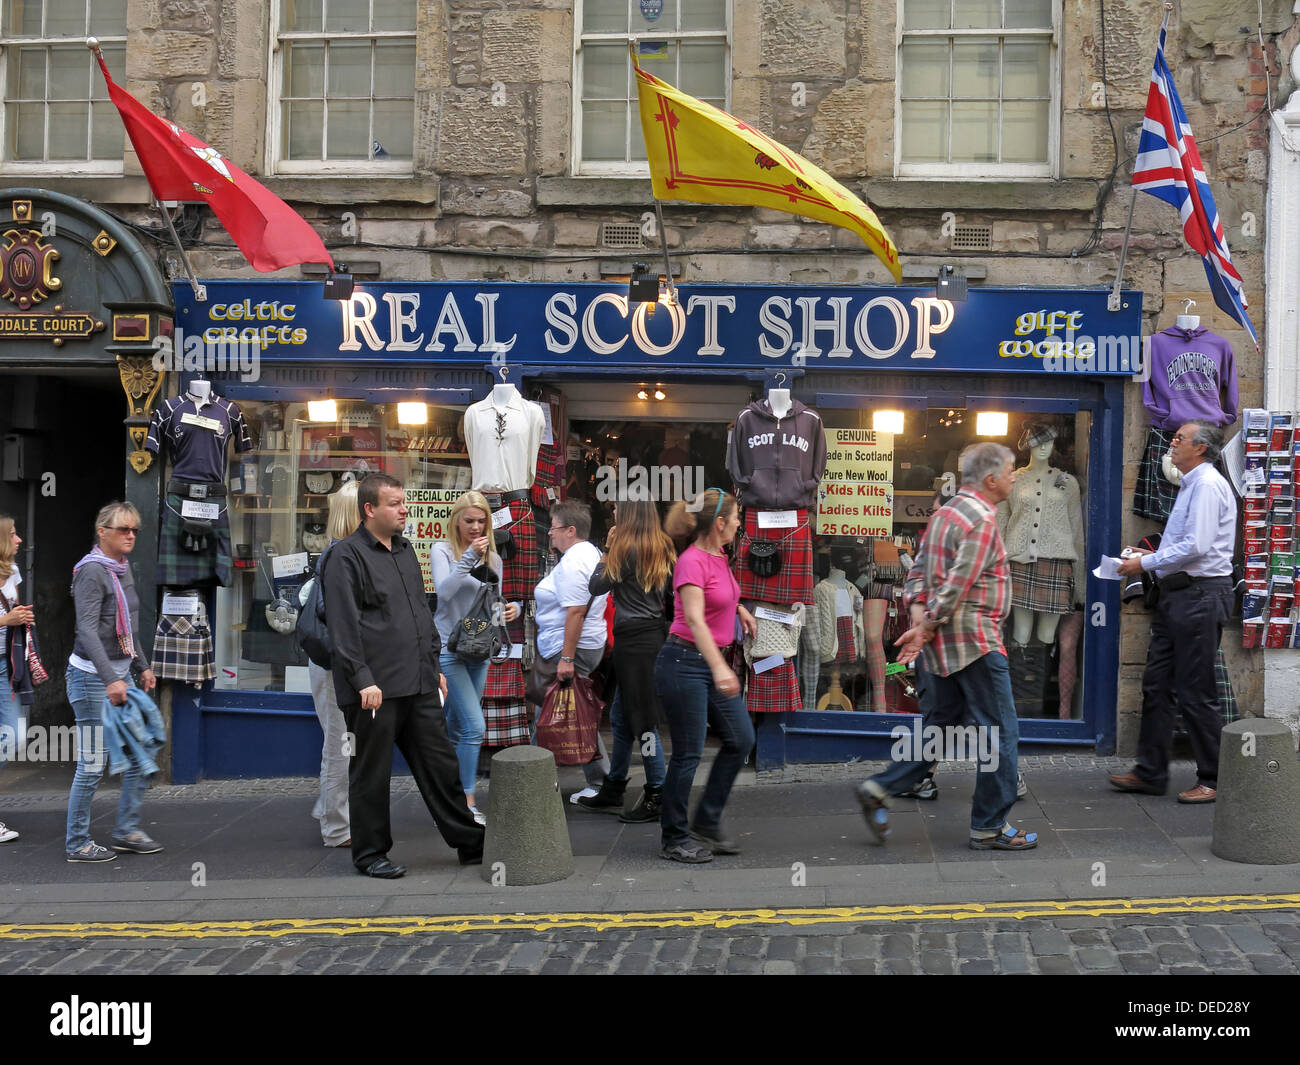 EH1,Scottish,Scot,scots,independance,independence,crafts,Royal,mile,high,st,street,classic,union,jack,flag,flying,Saltaire,Scottish,Scotish,crowd,of,people,tourists,buying,buyers,souvenirs,scotshop,flags,flying,fluttering,in,th,ebreeze,Gotonysmith,tourist,tourism,travel,traveller,destination,thing,to,see,building,architecture,classic,old,buildings,Buy Pictures of,Buy Images Of